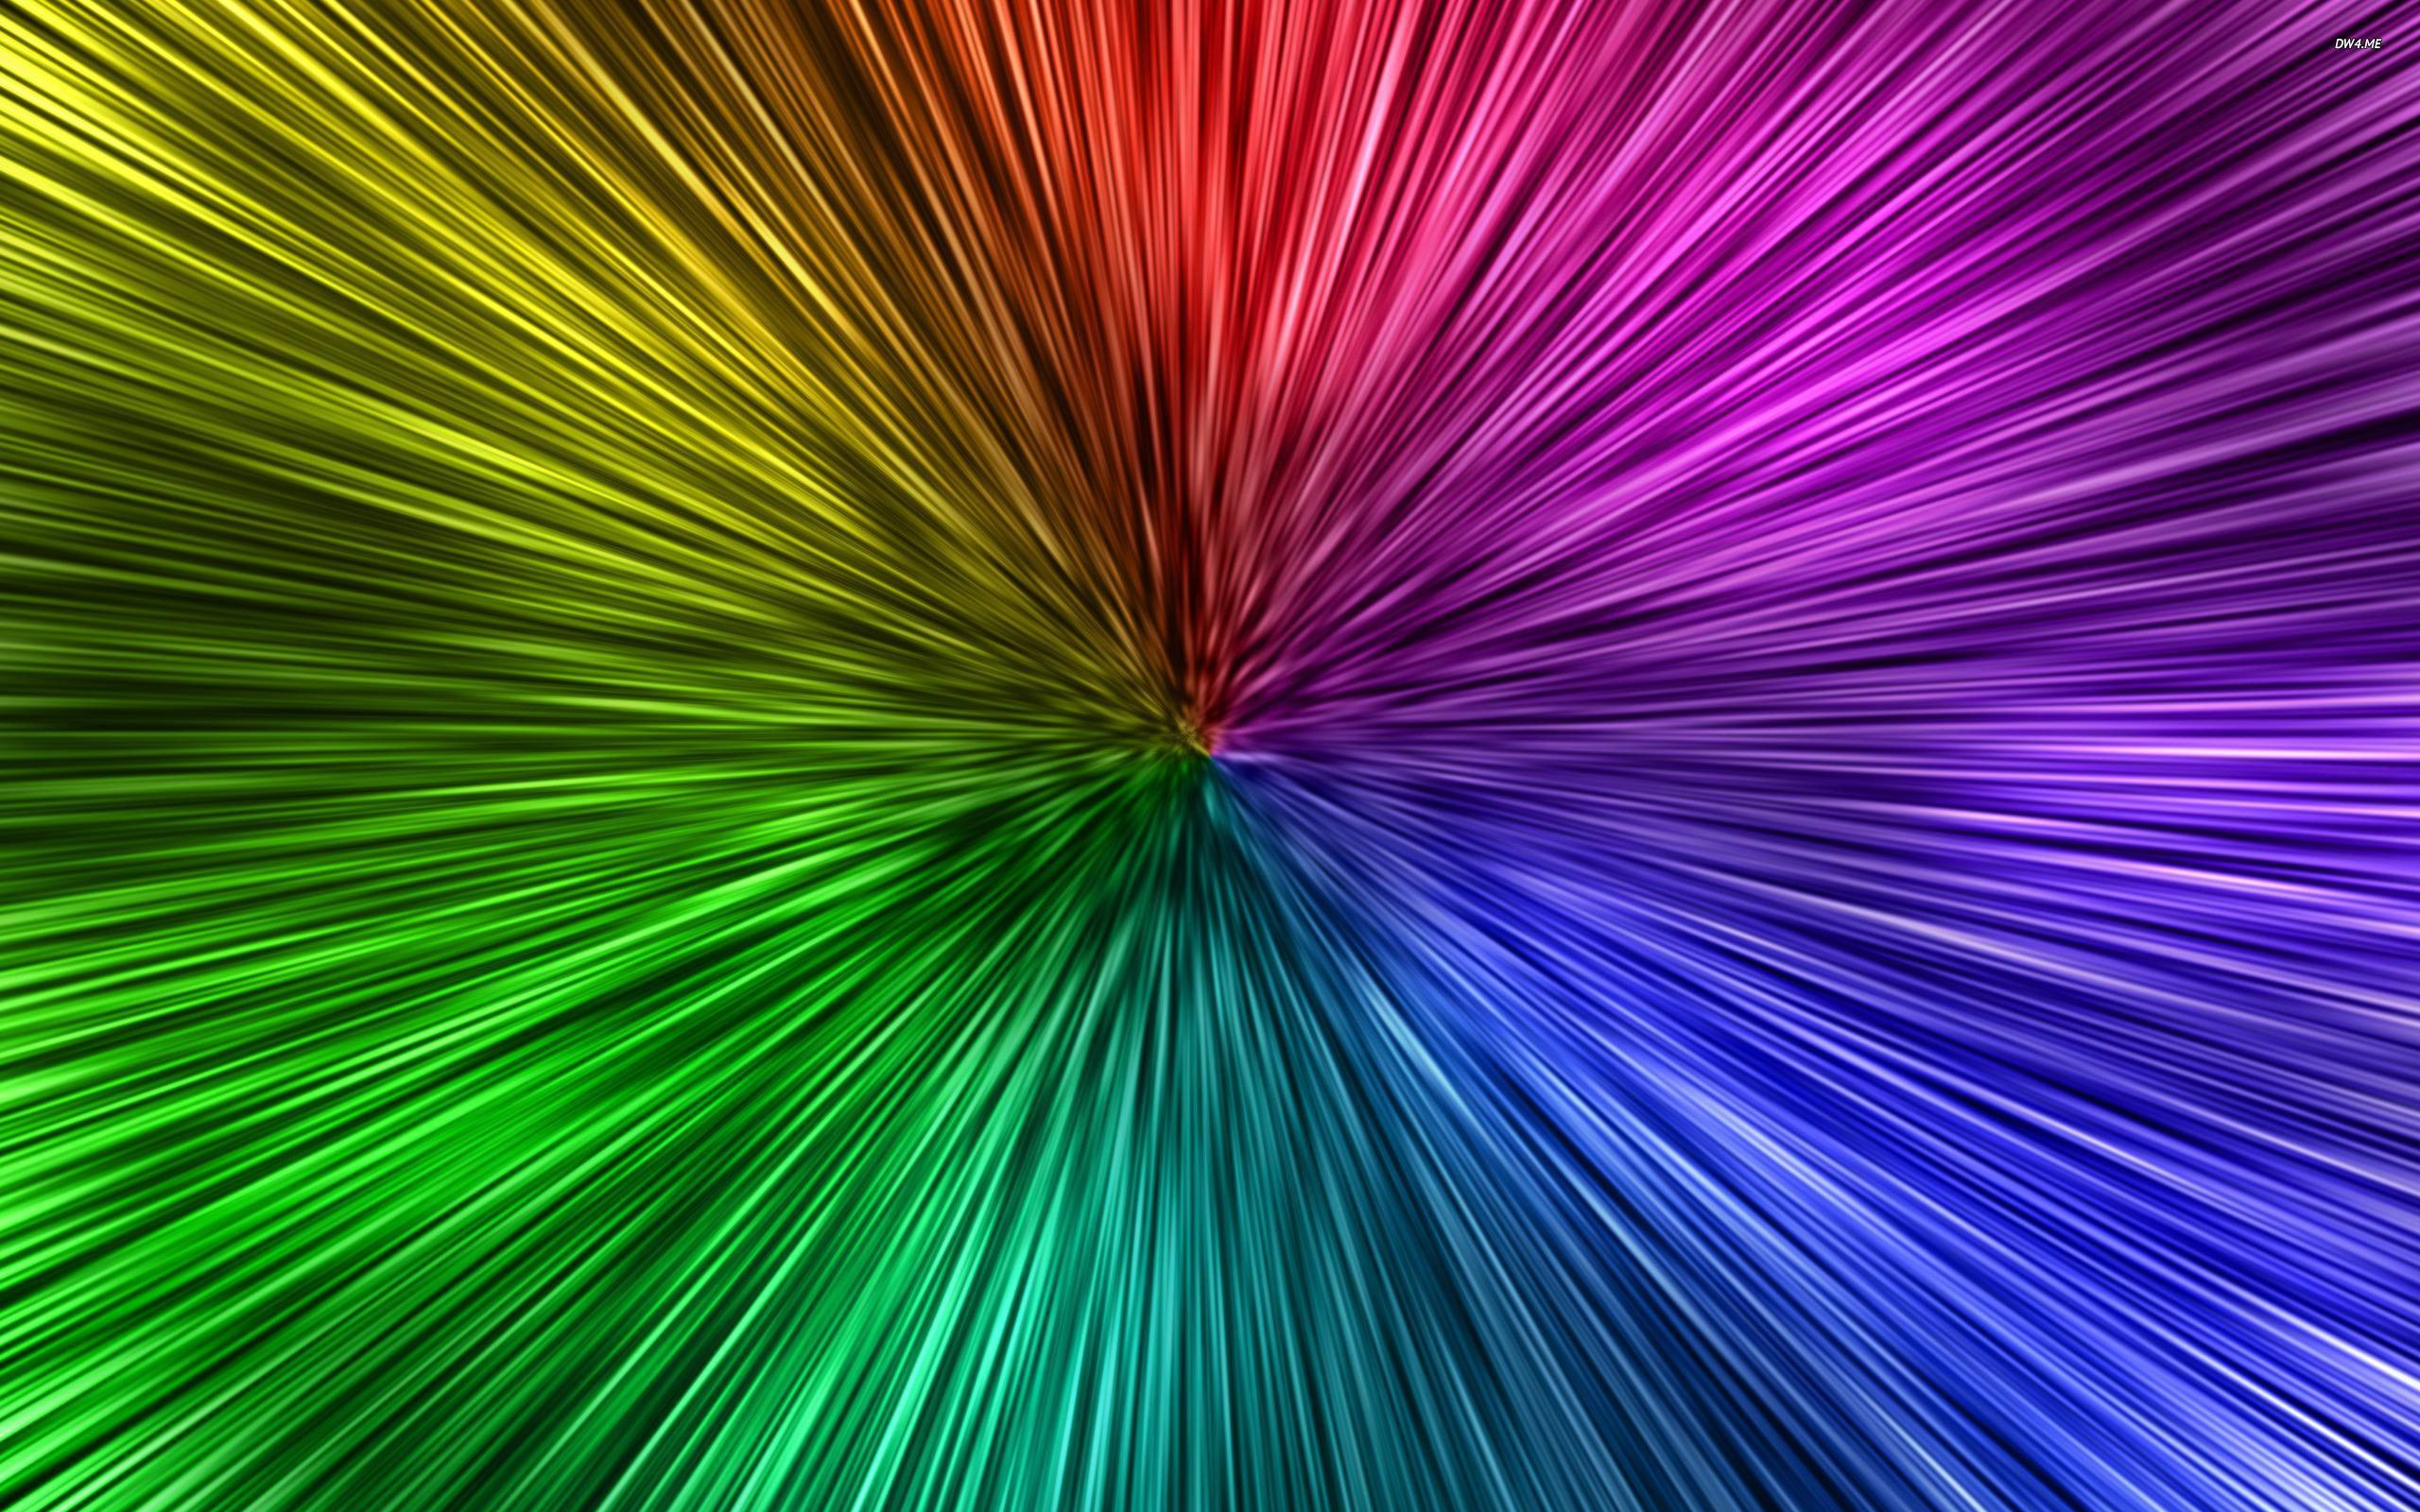 Neon Colors Backgrounds (56+ images)